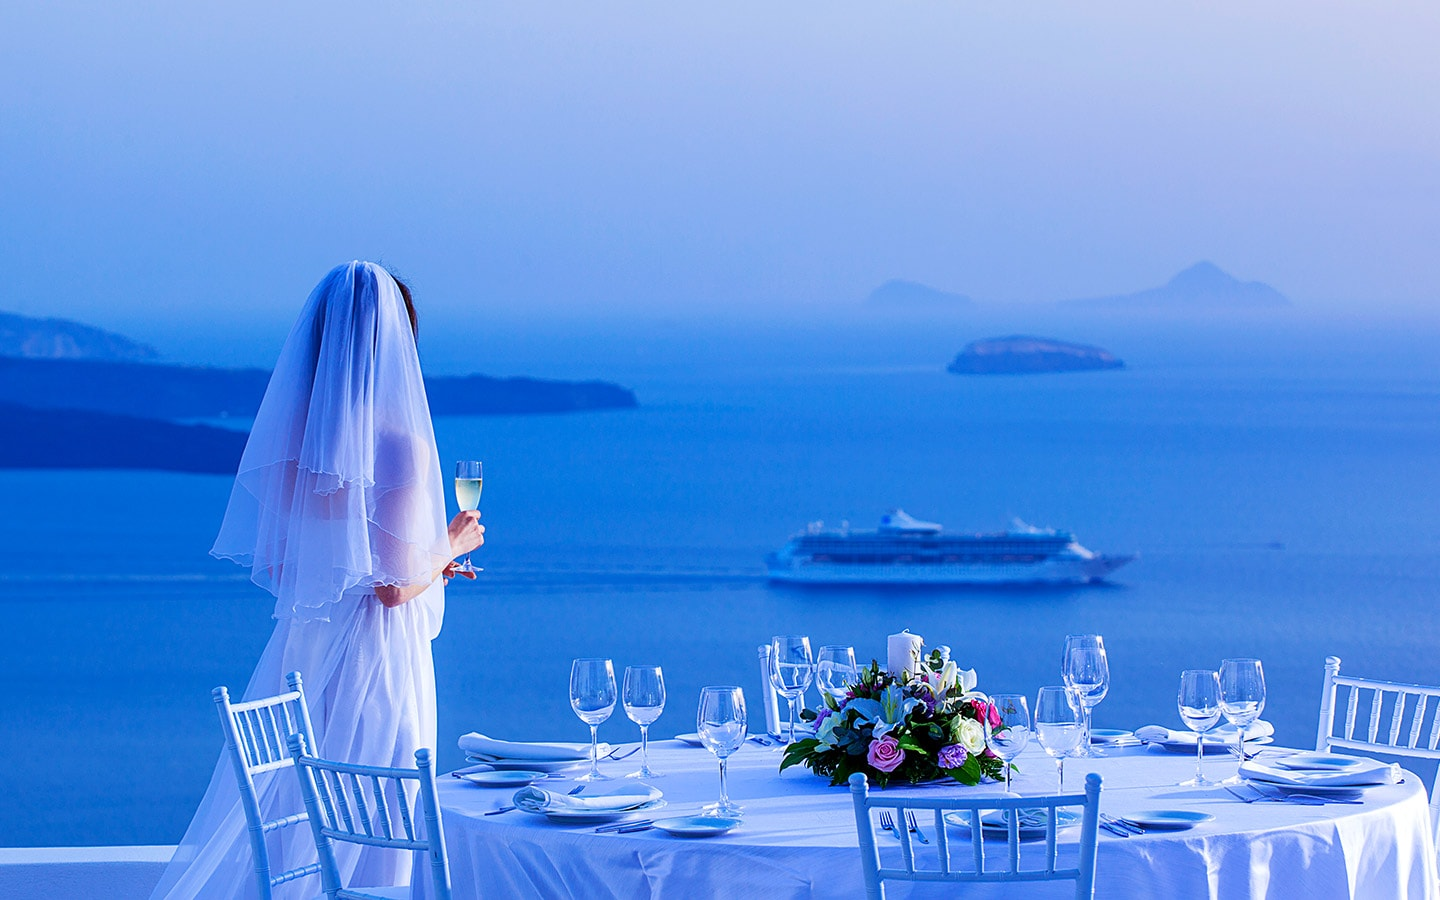 Santorini Weddings San Antonio Santorini Hotel 1440x900